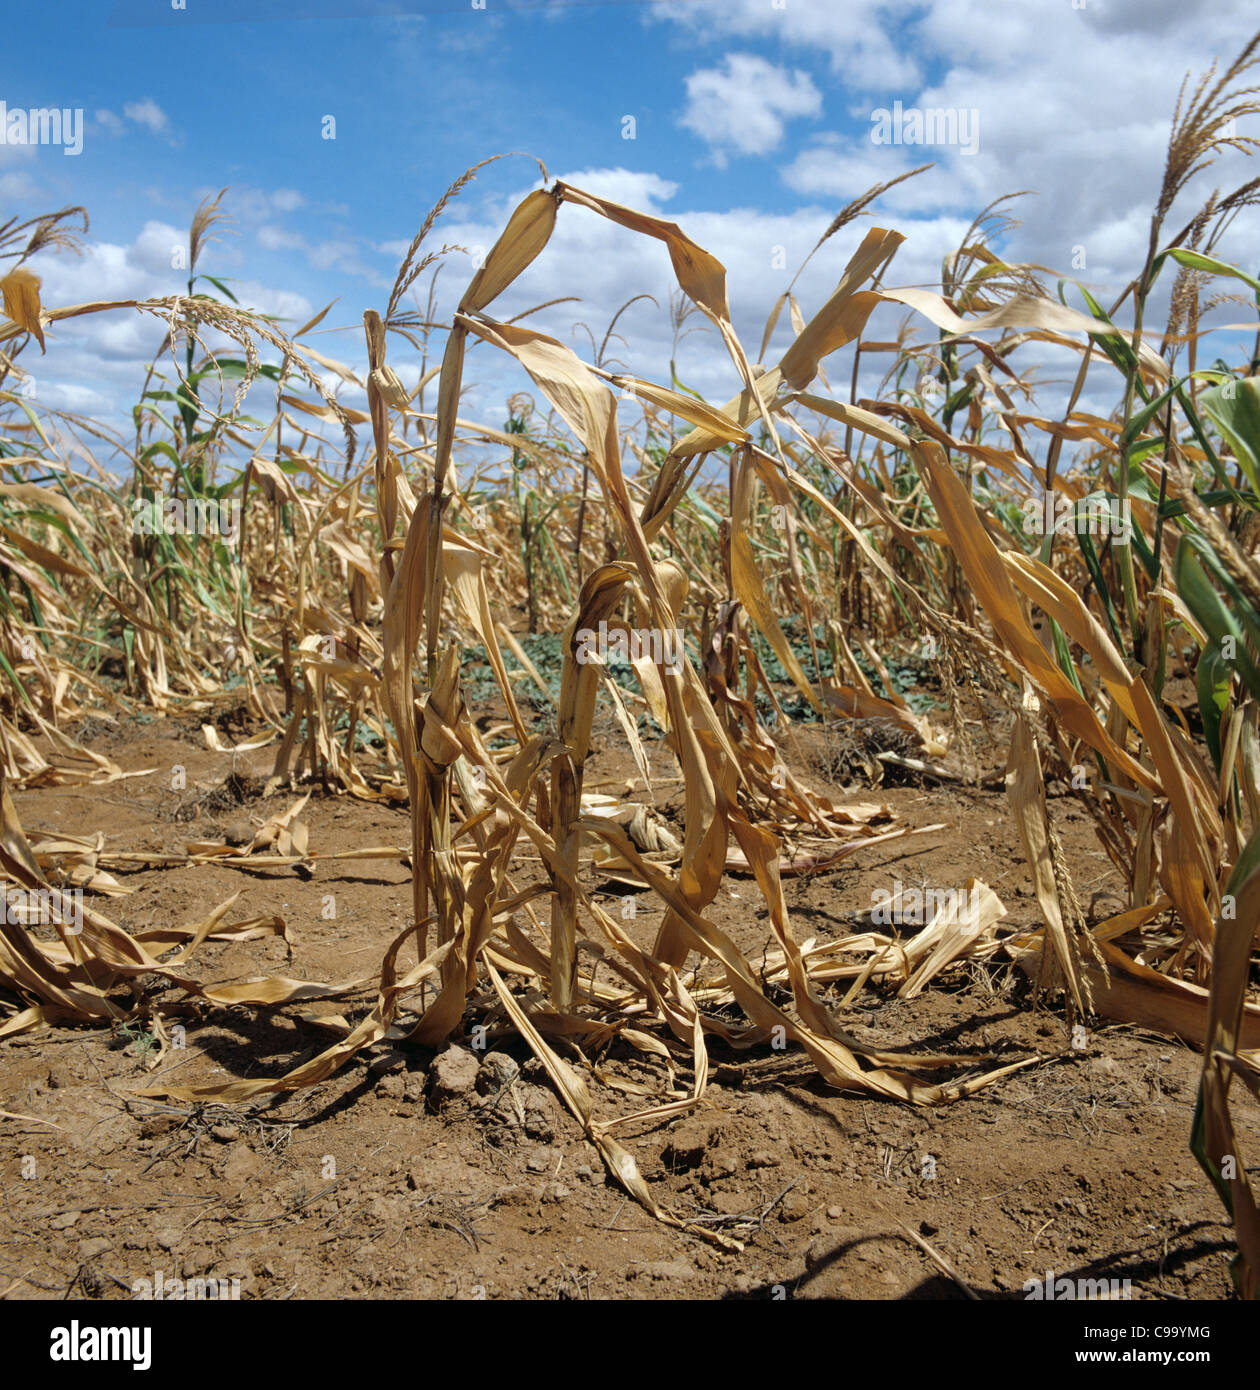 Failing maize, corn, crop struggling to grow in non-irrigated farmland in Tanzania, East Africa - Stock Image